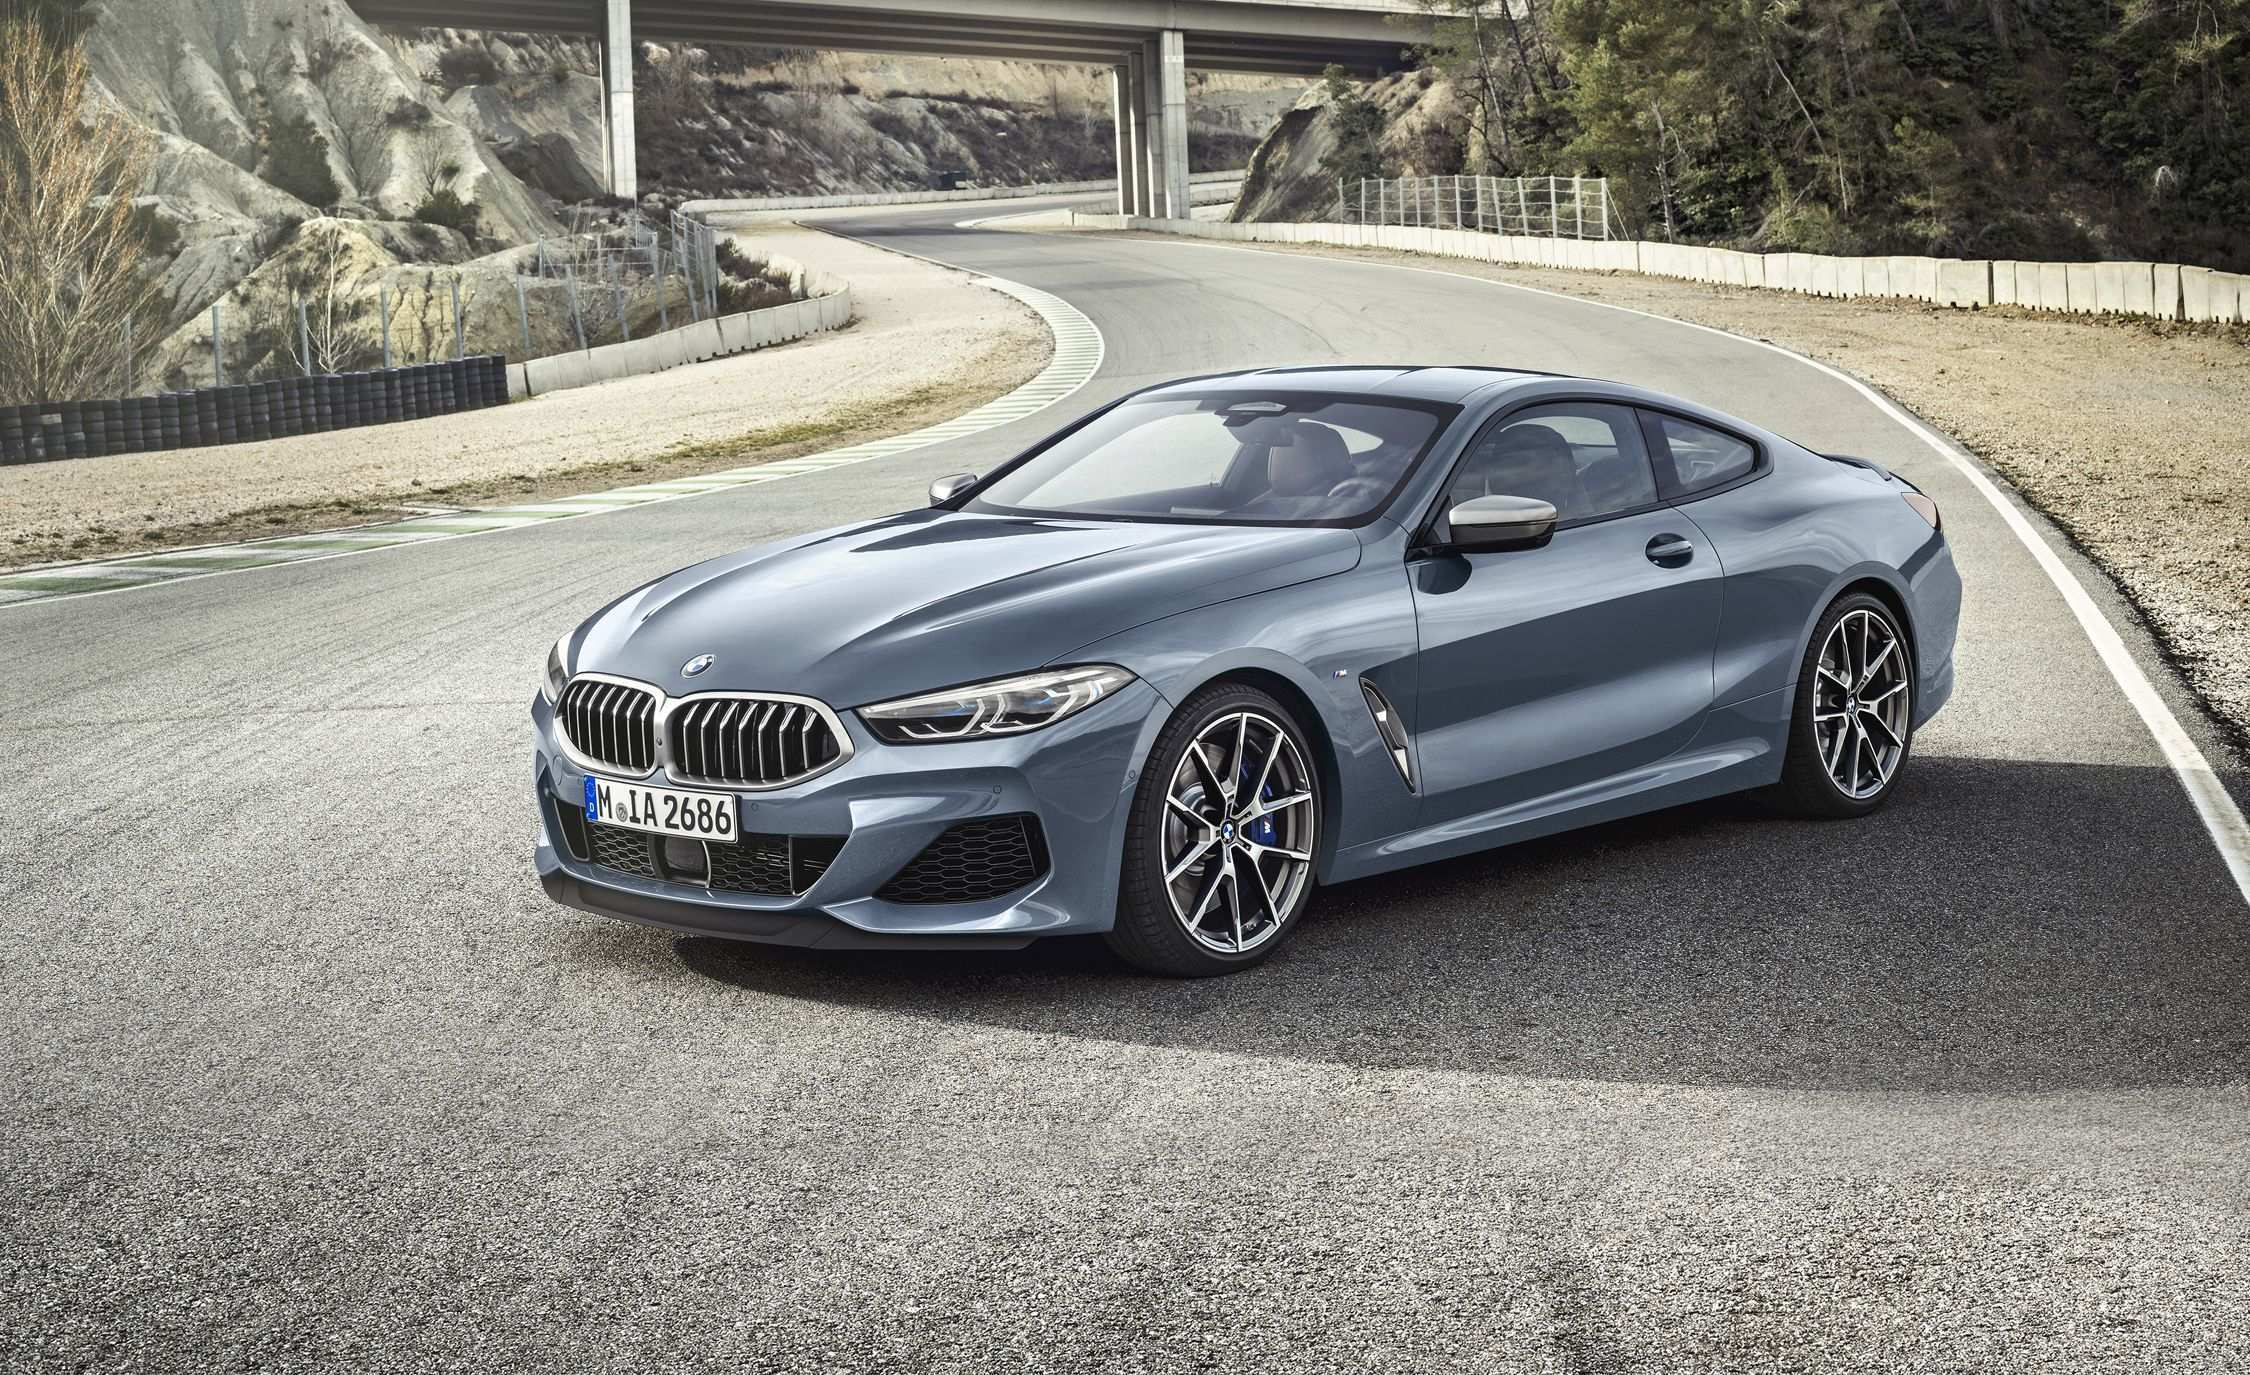 53 Best Review 2019 Bmw Limited New Concept by 2019 Bmw Limited